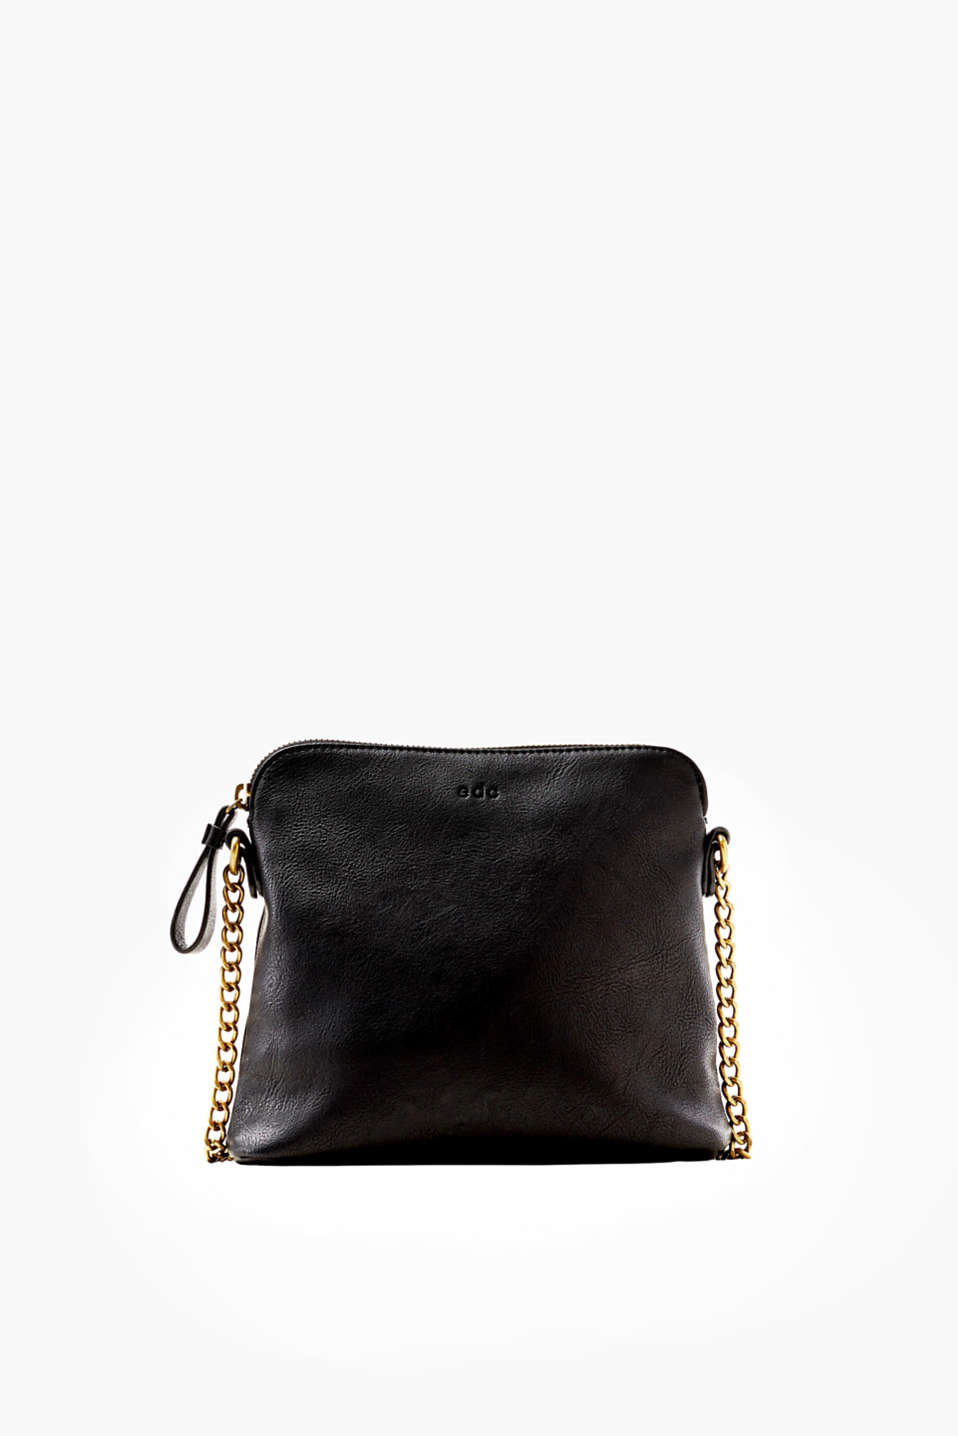 edc - Metallic shoulder bag with a chain